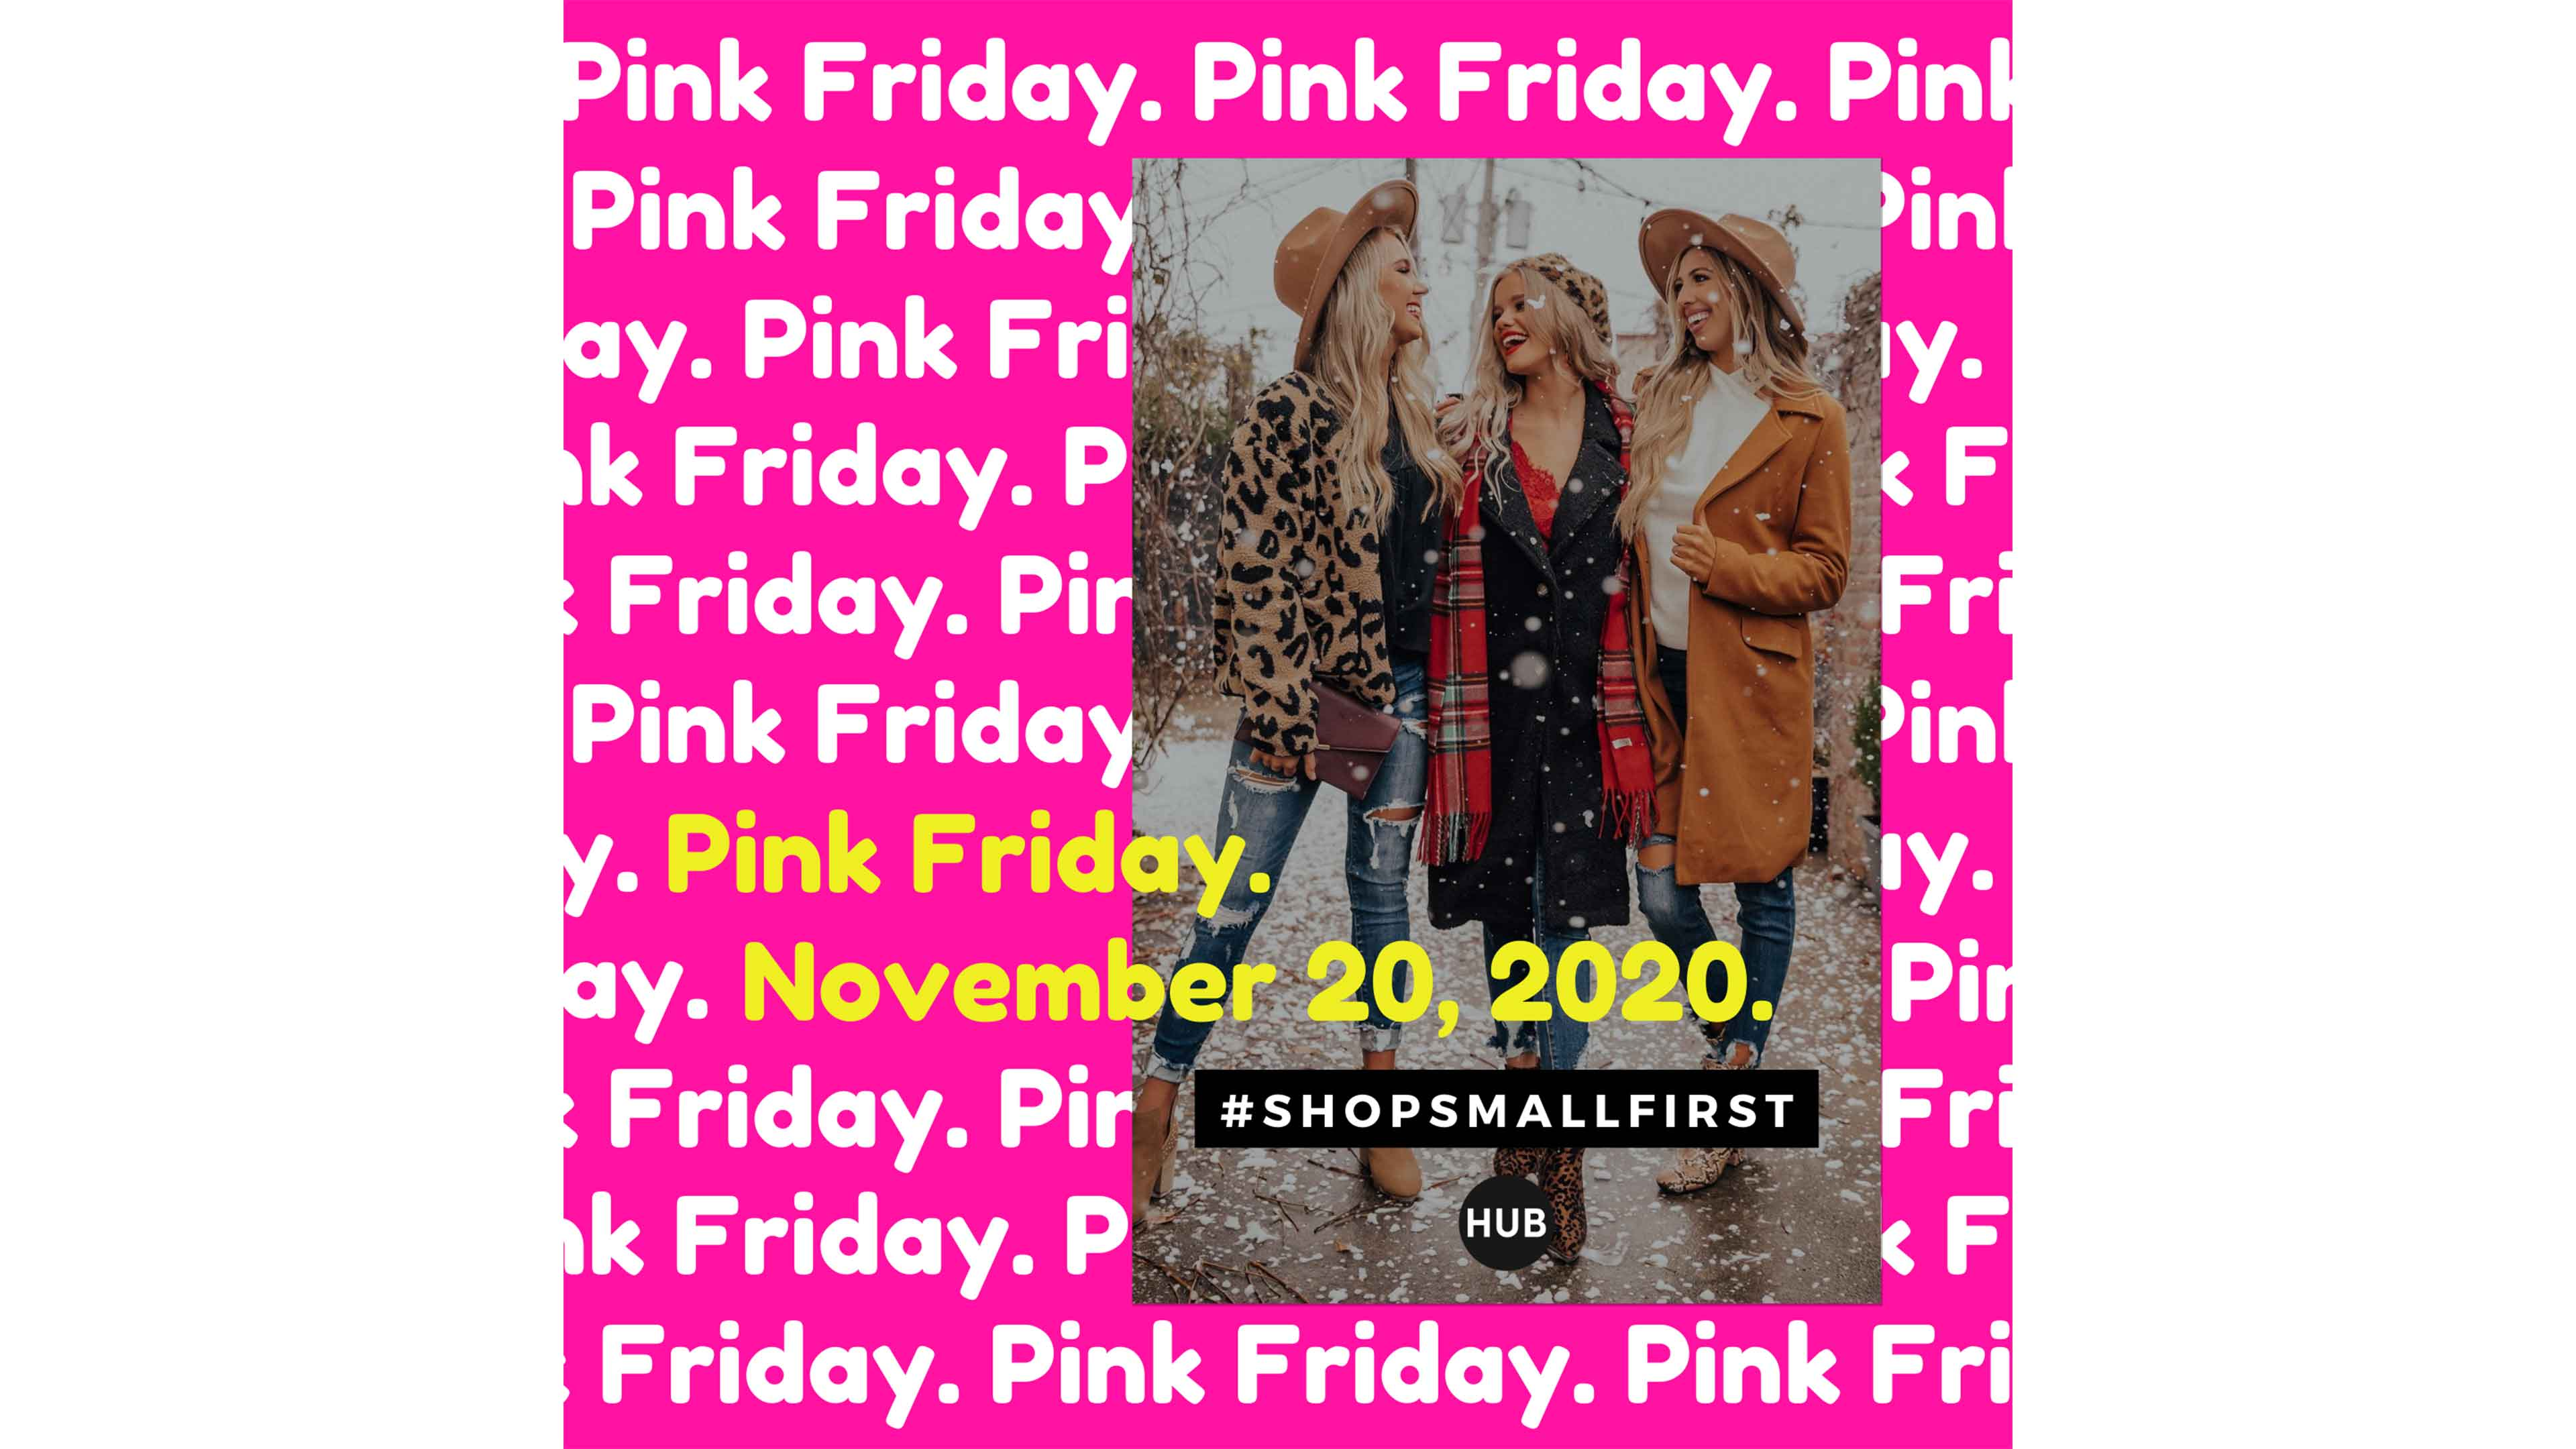 We Are Proud to Be Participating in Pink Friday